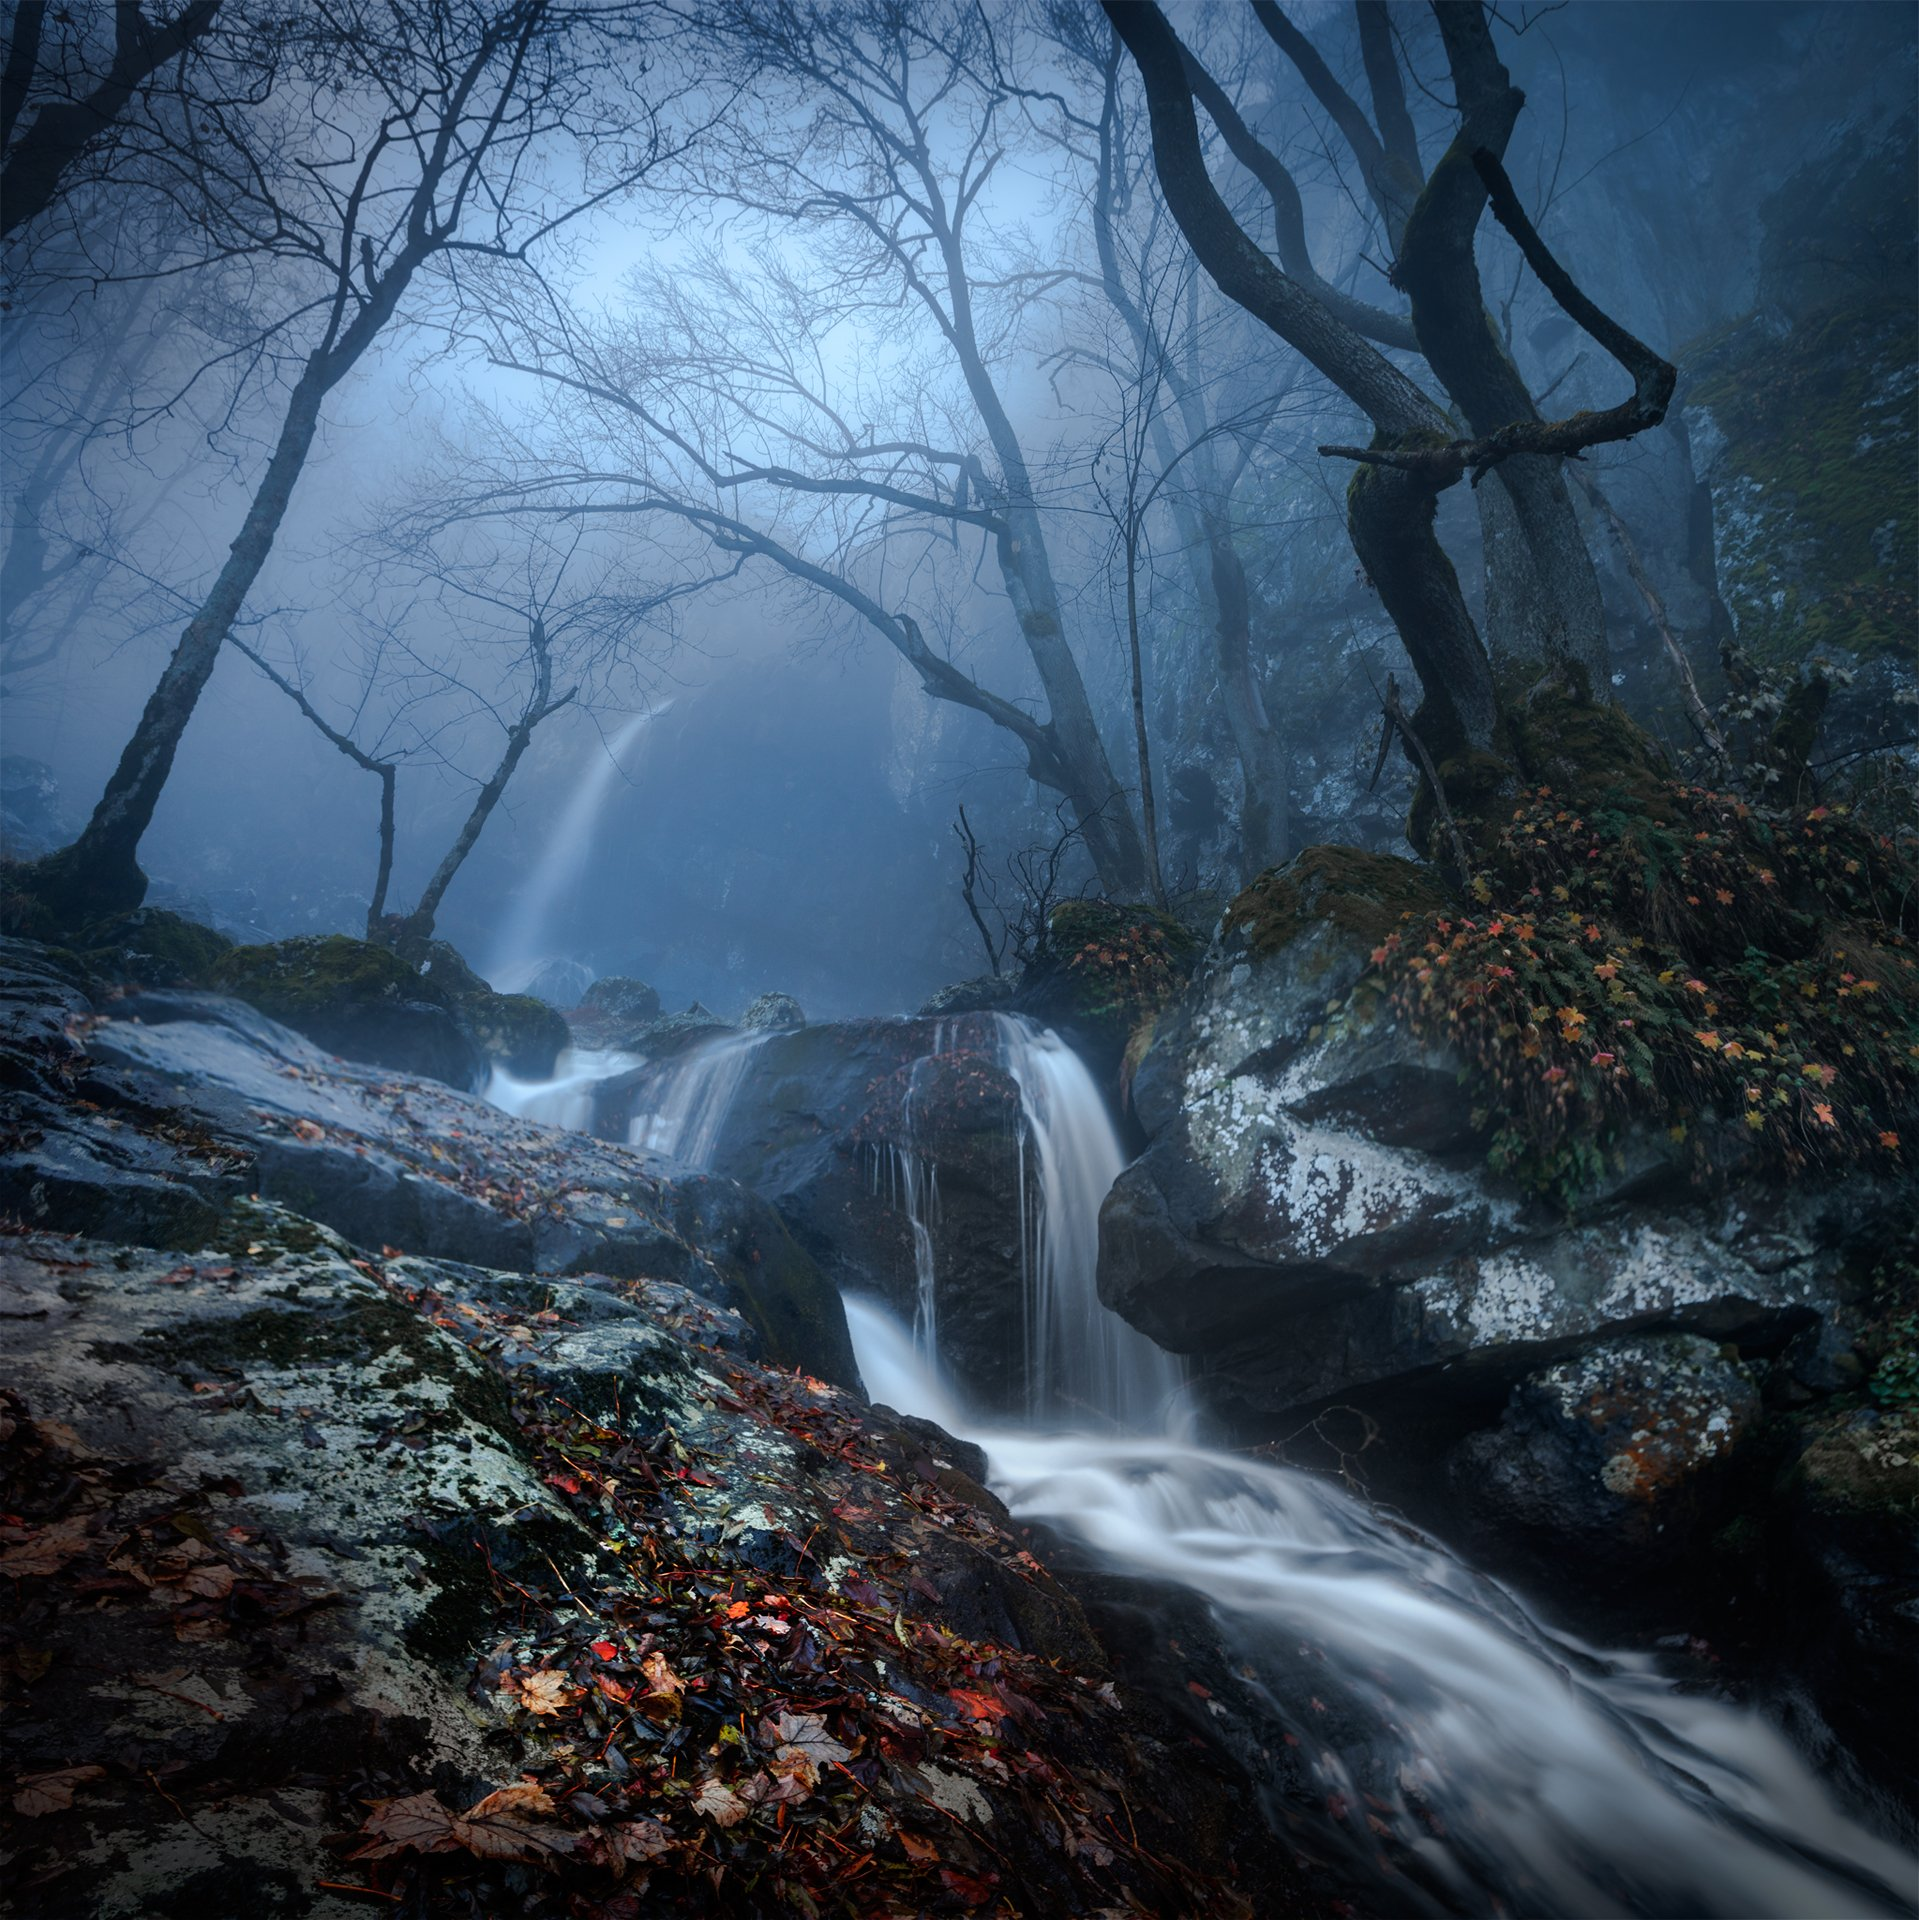 landscape, nature, scenery, forest, wood, mist, misty, fog, foggy, waterfall, fall, autumn, mountain, vitosha, bulgaria, туман, лес, Александър Александров